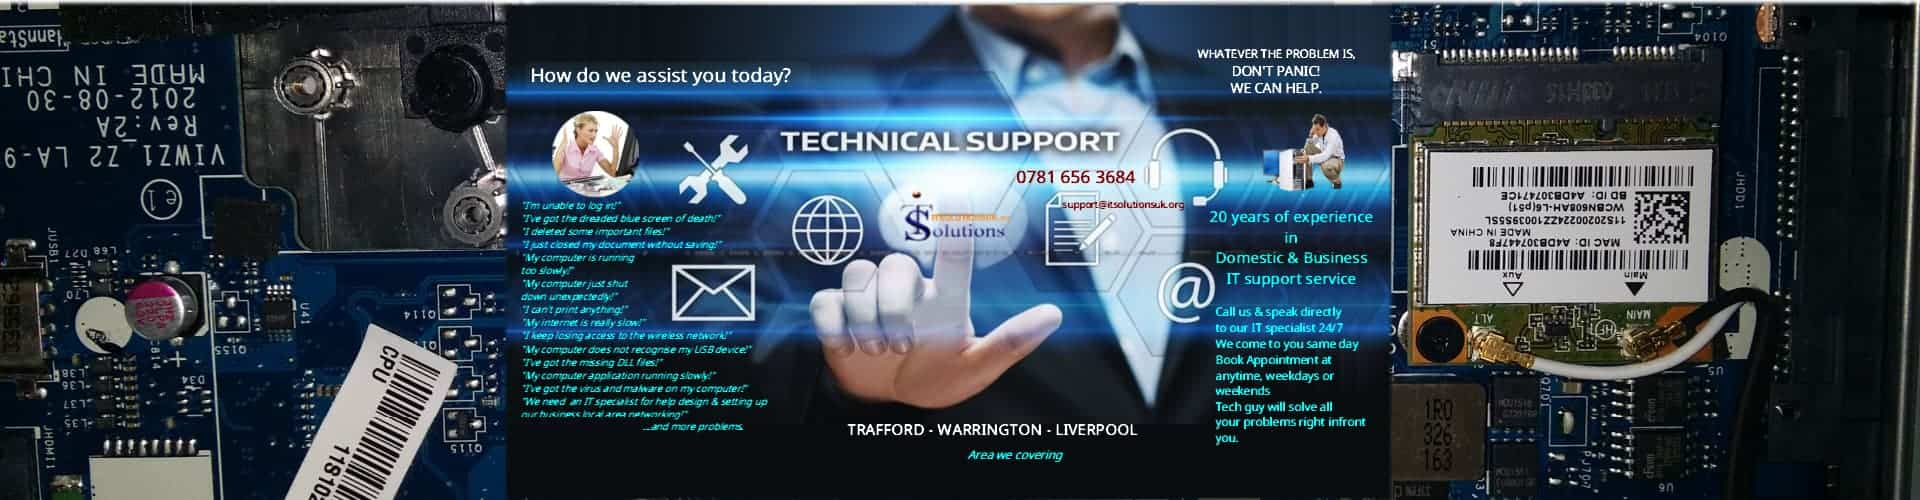 computer_network_experts_repair_warrington